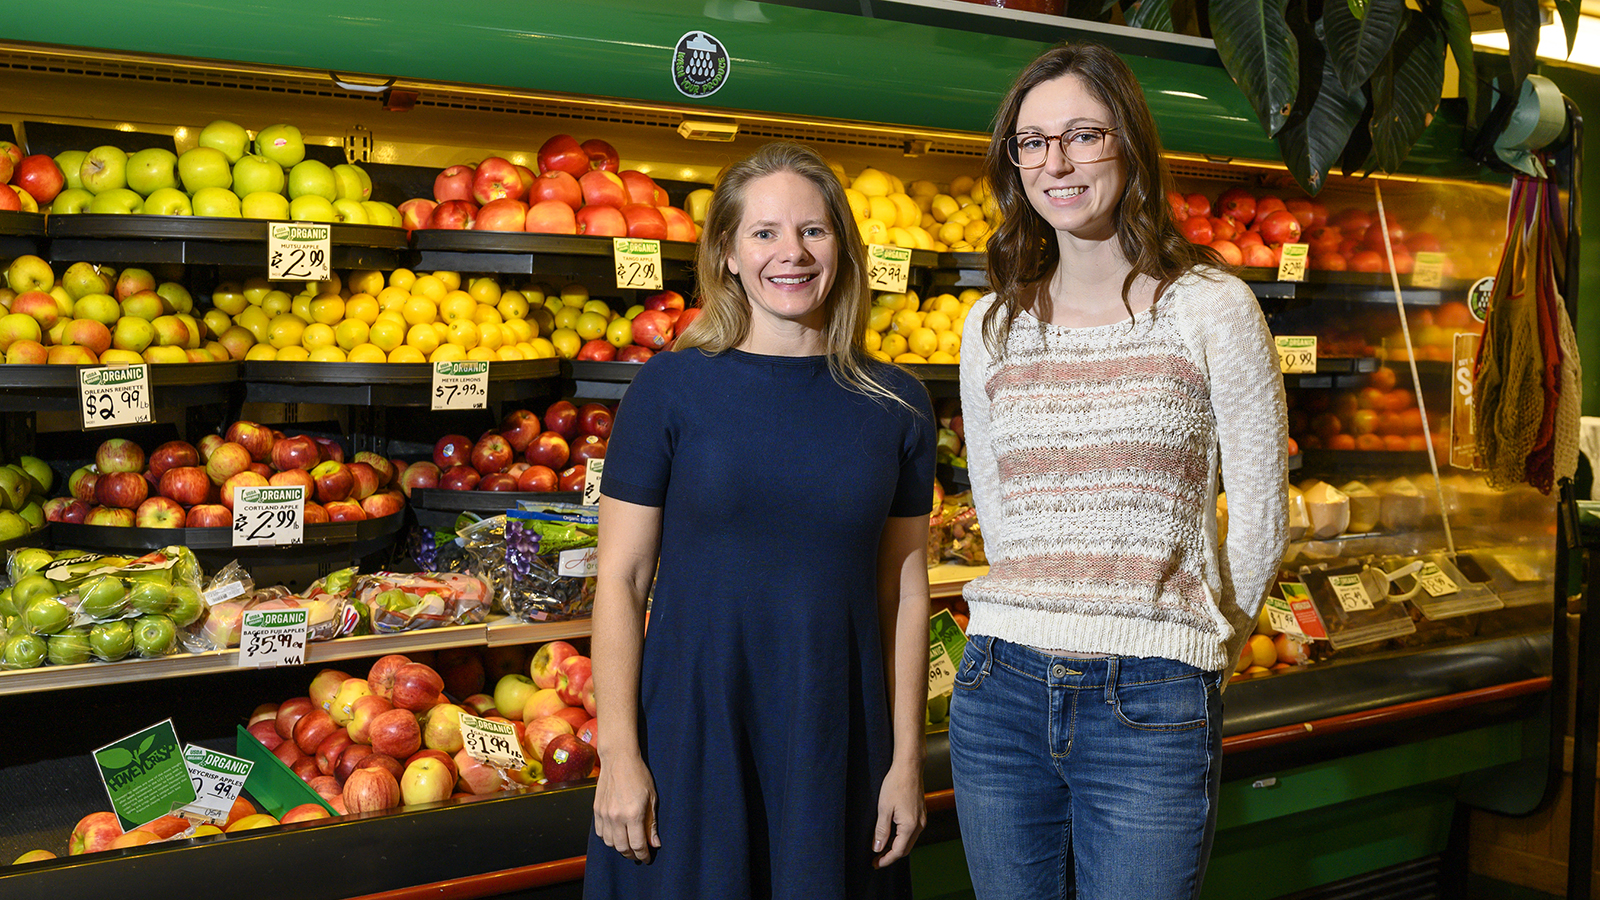 Two women stand in front of produce